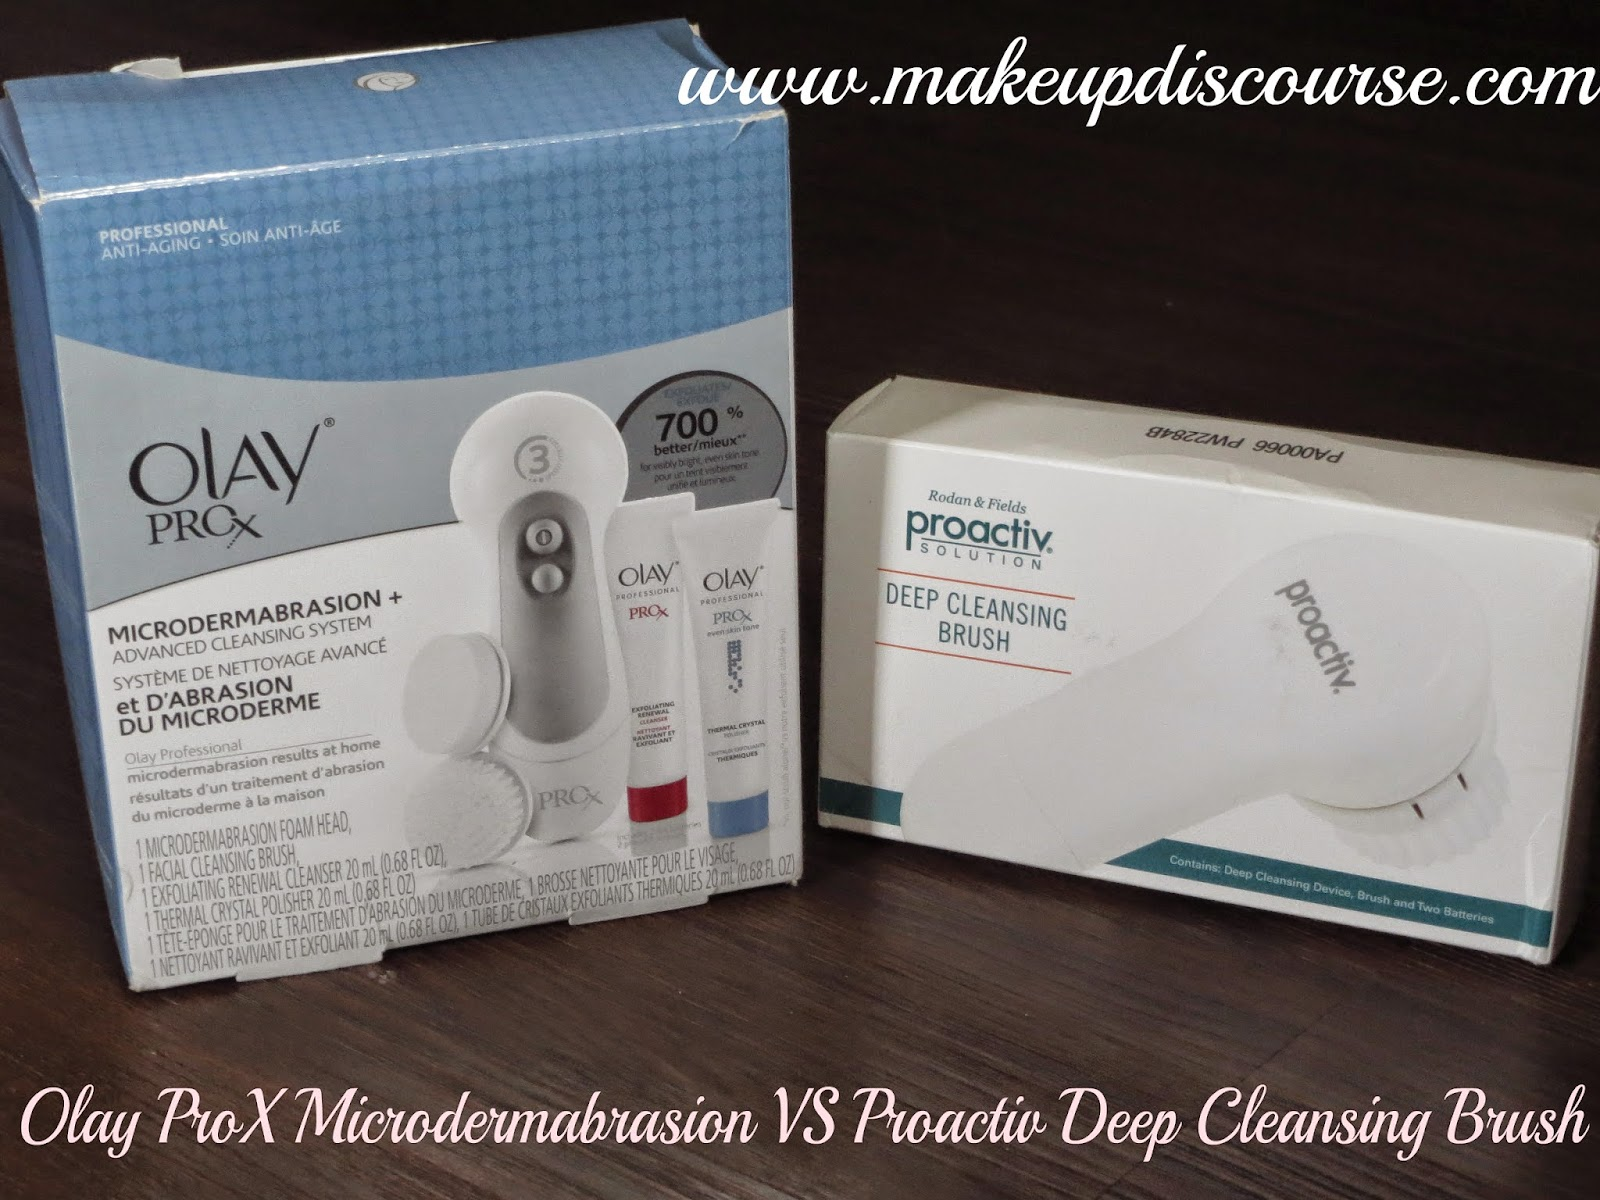 Olay Prox Microdermabrasion + Advanced Cleansing System, Proactiv Deep Cleansing Brush Review India